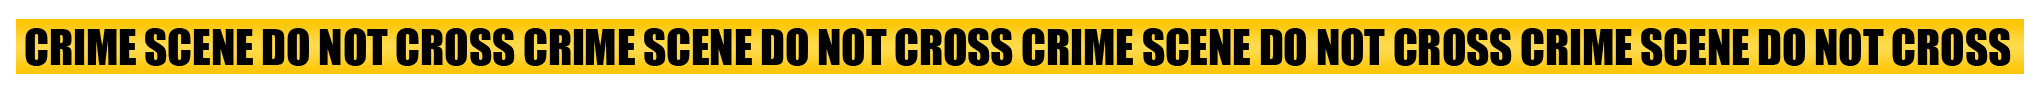 Download this high resolution Police Tape Transparent PNG File